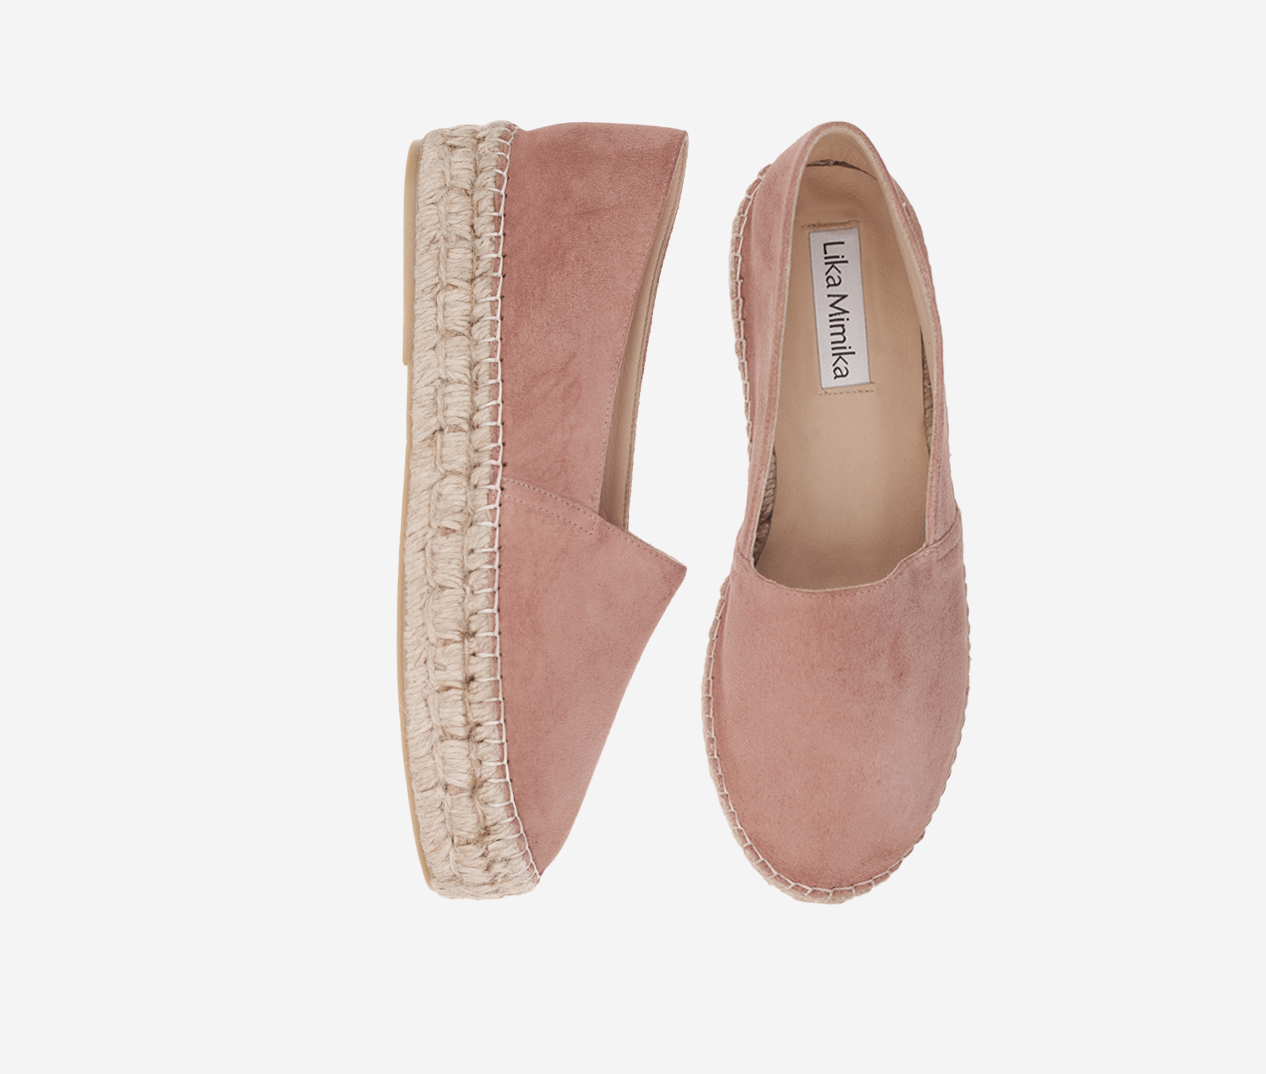 e40b8877b6b MAKE UP / Goat Suede / Upgrade Espadrilles